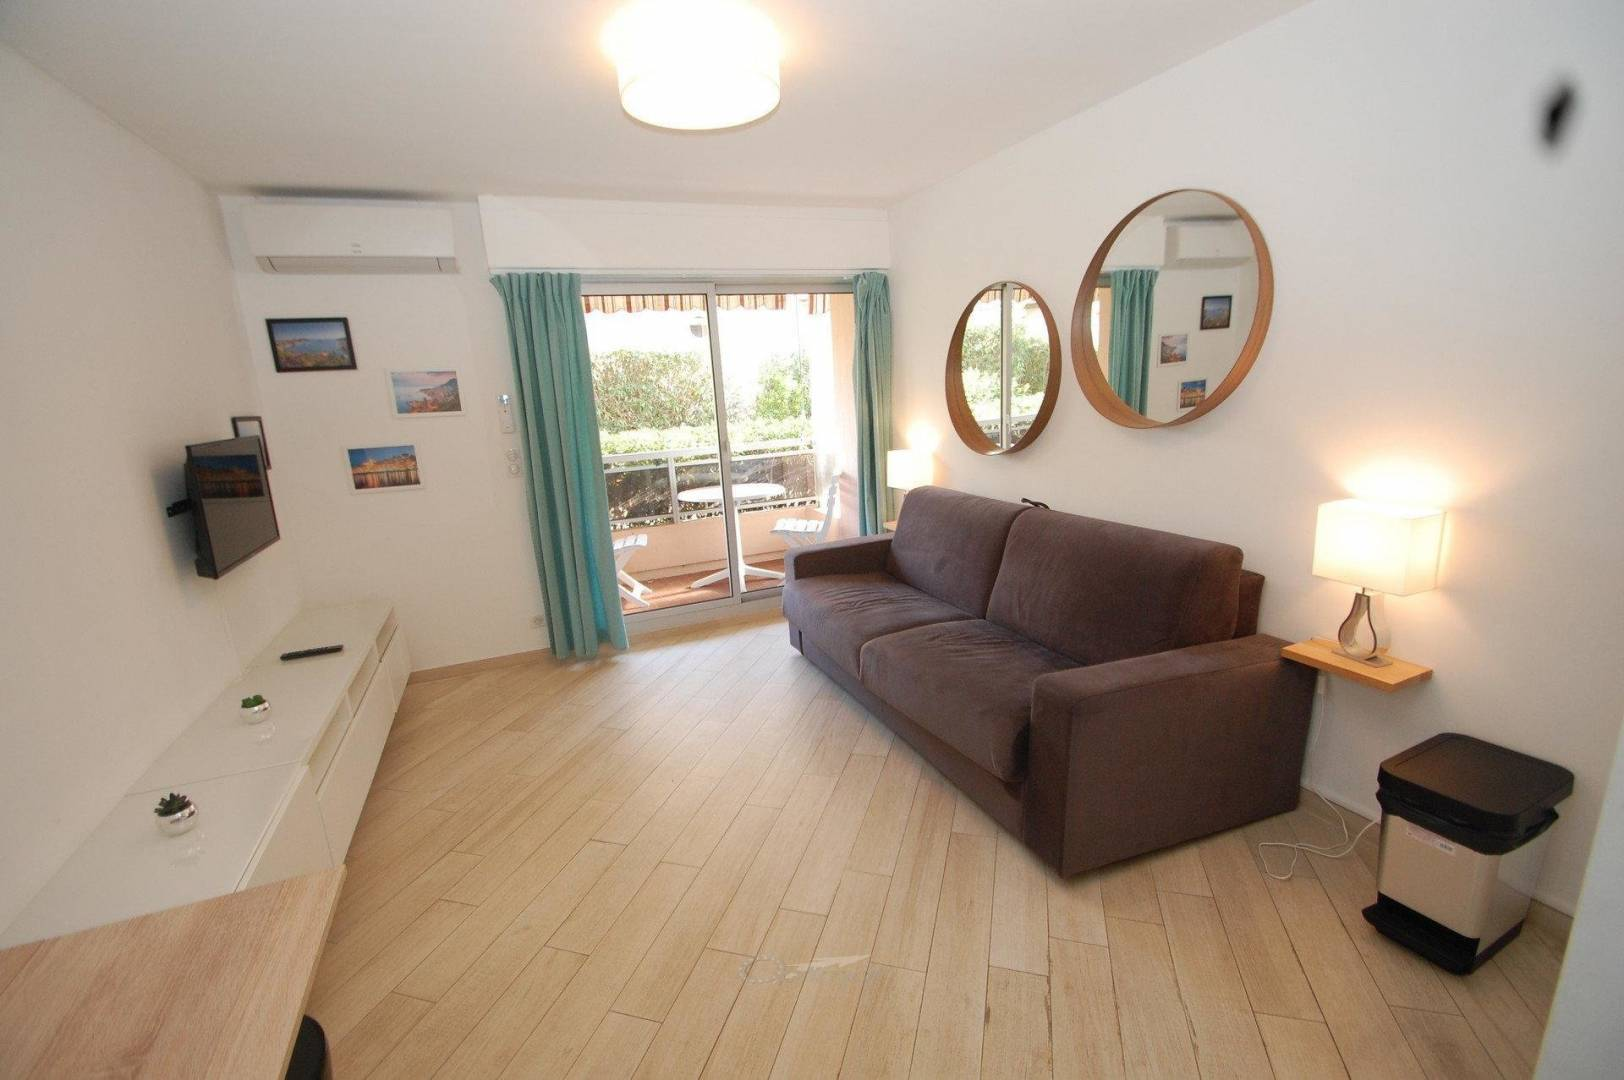 Location Studio Roquebrune-Cap-Martin